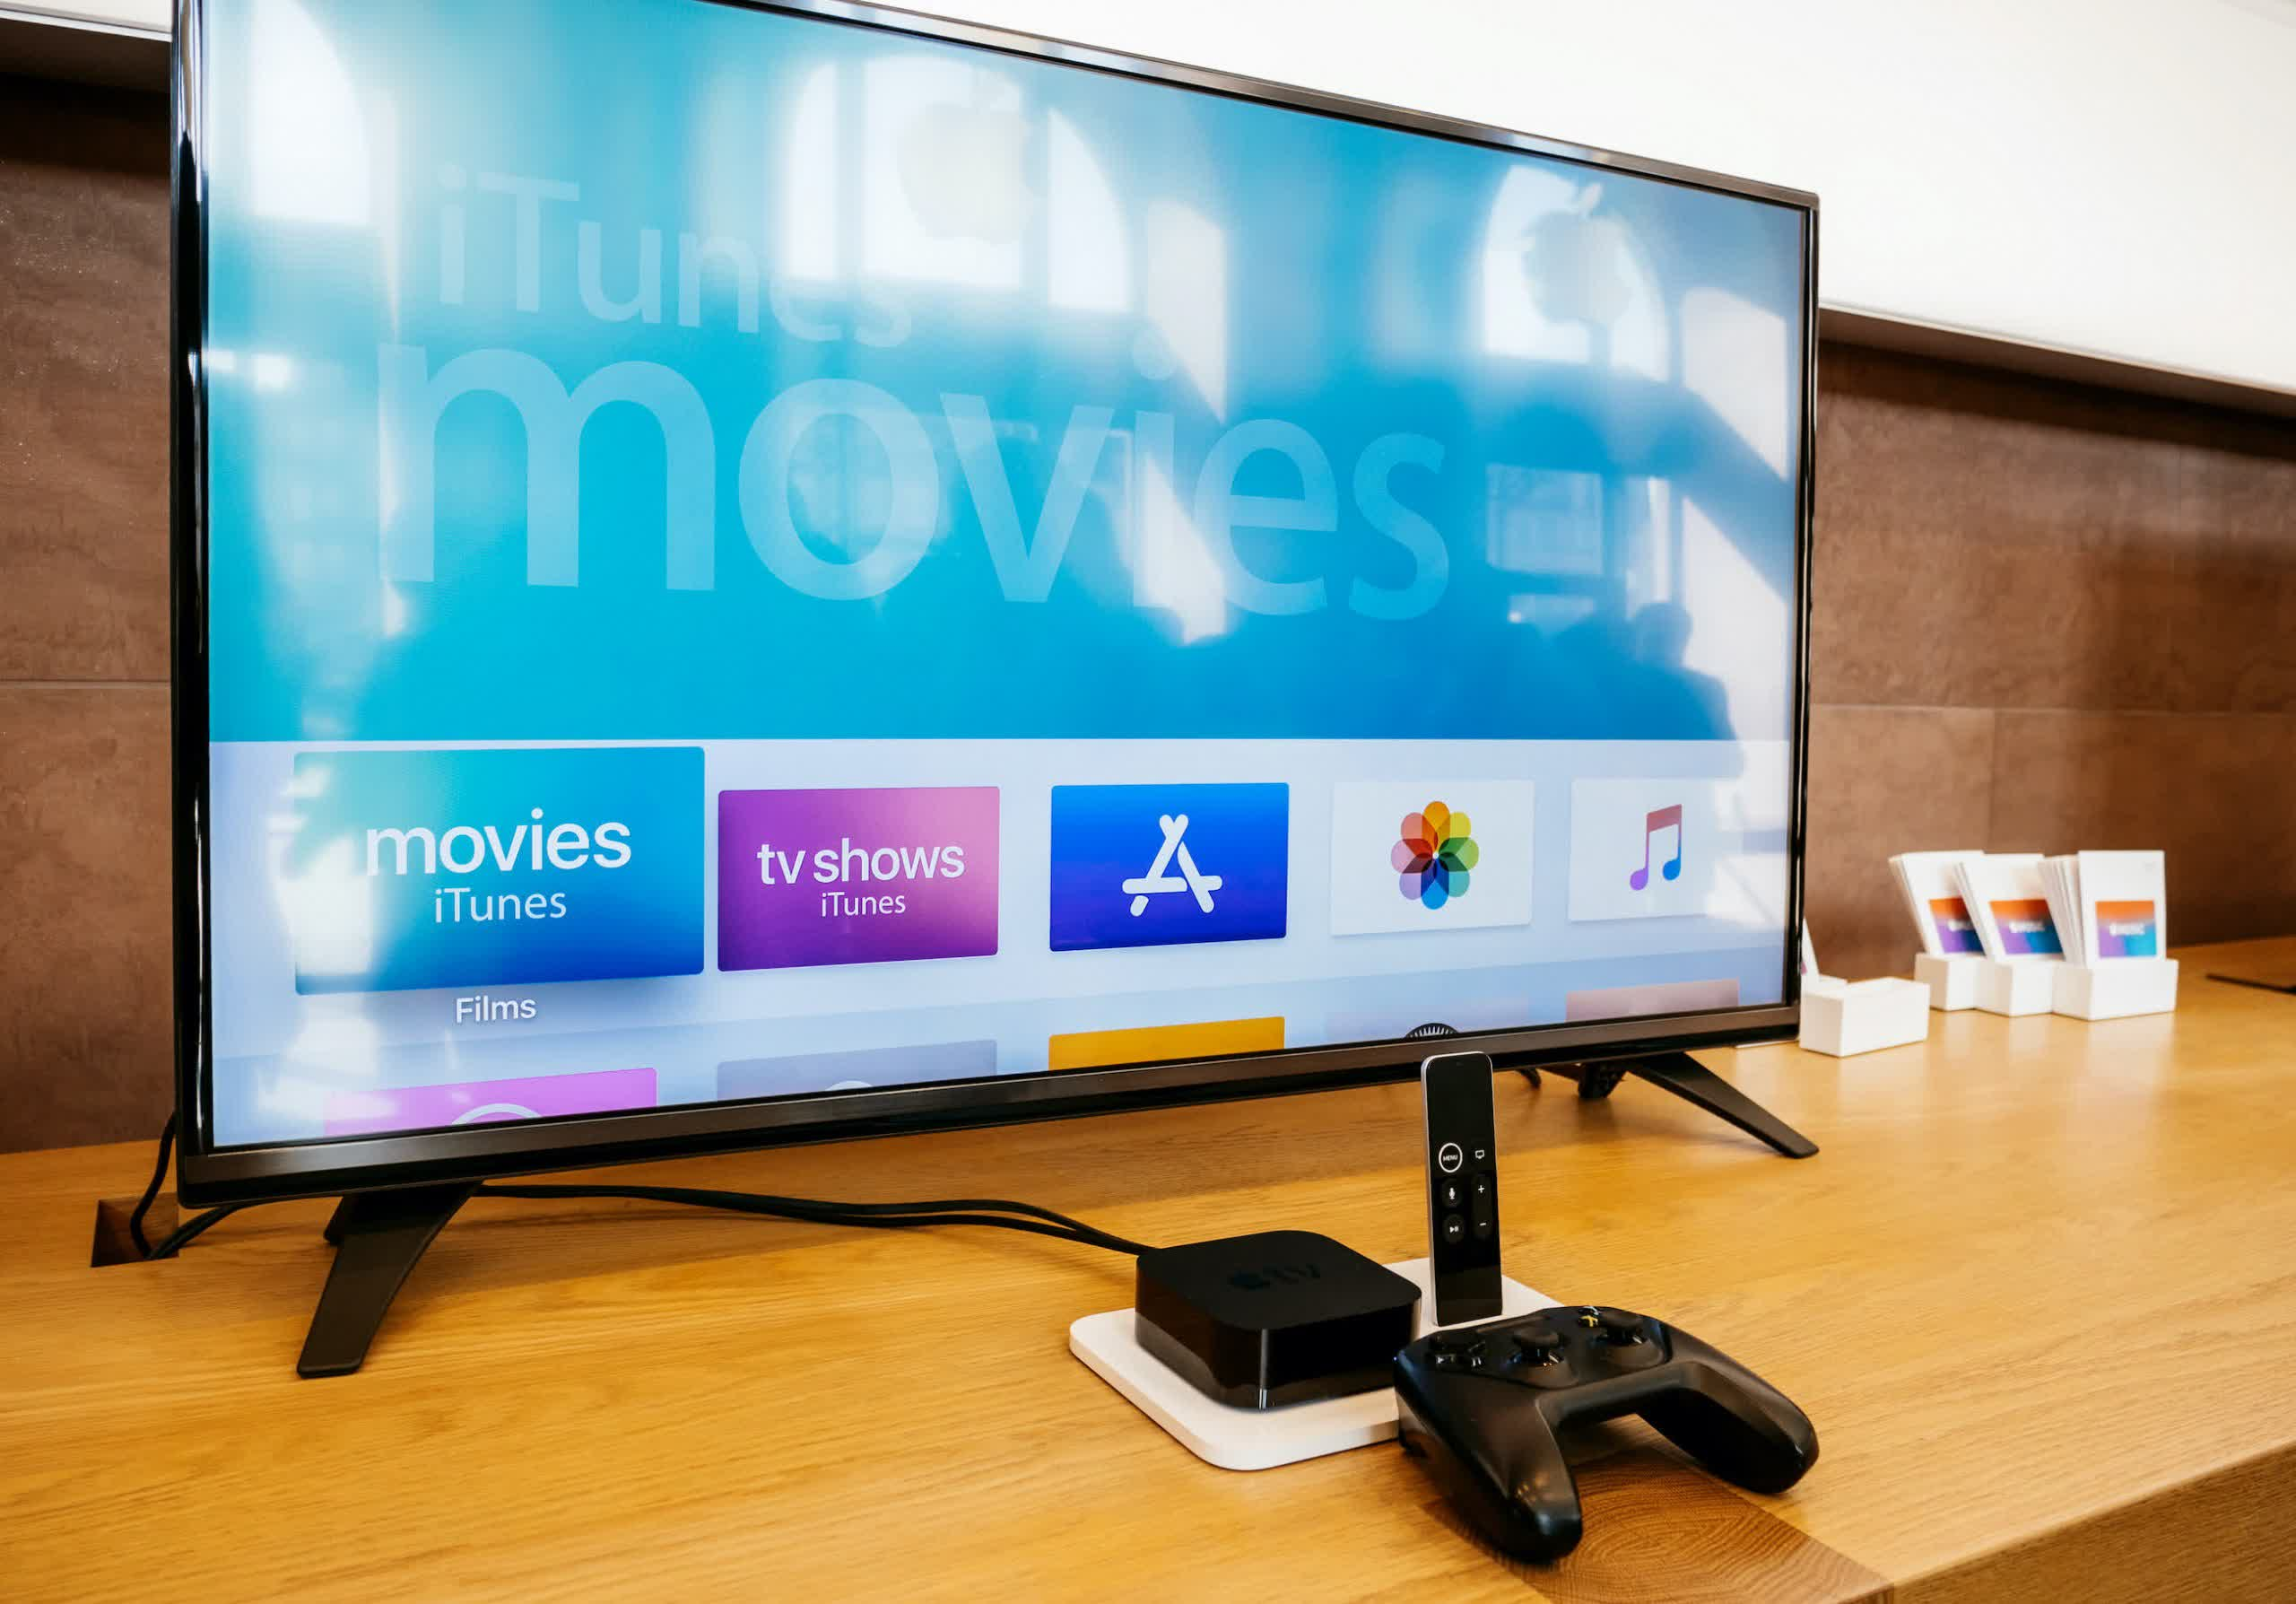 AppleTV+ will be available on all current- and next-generation consoles